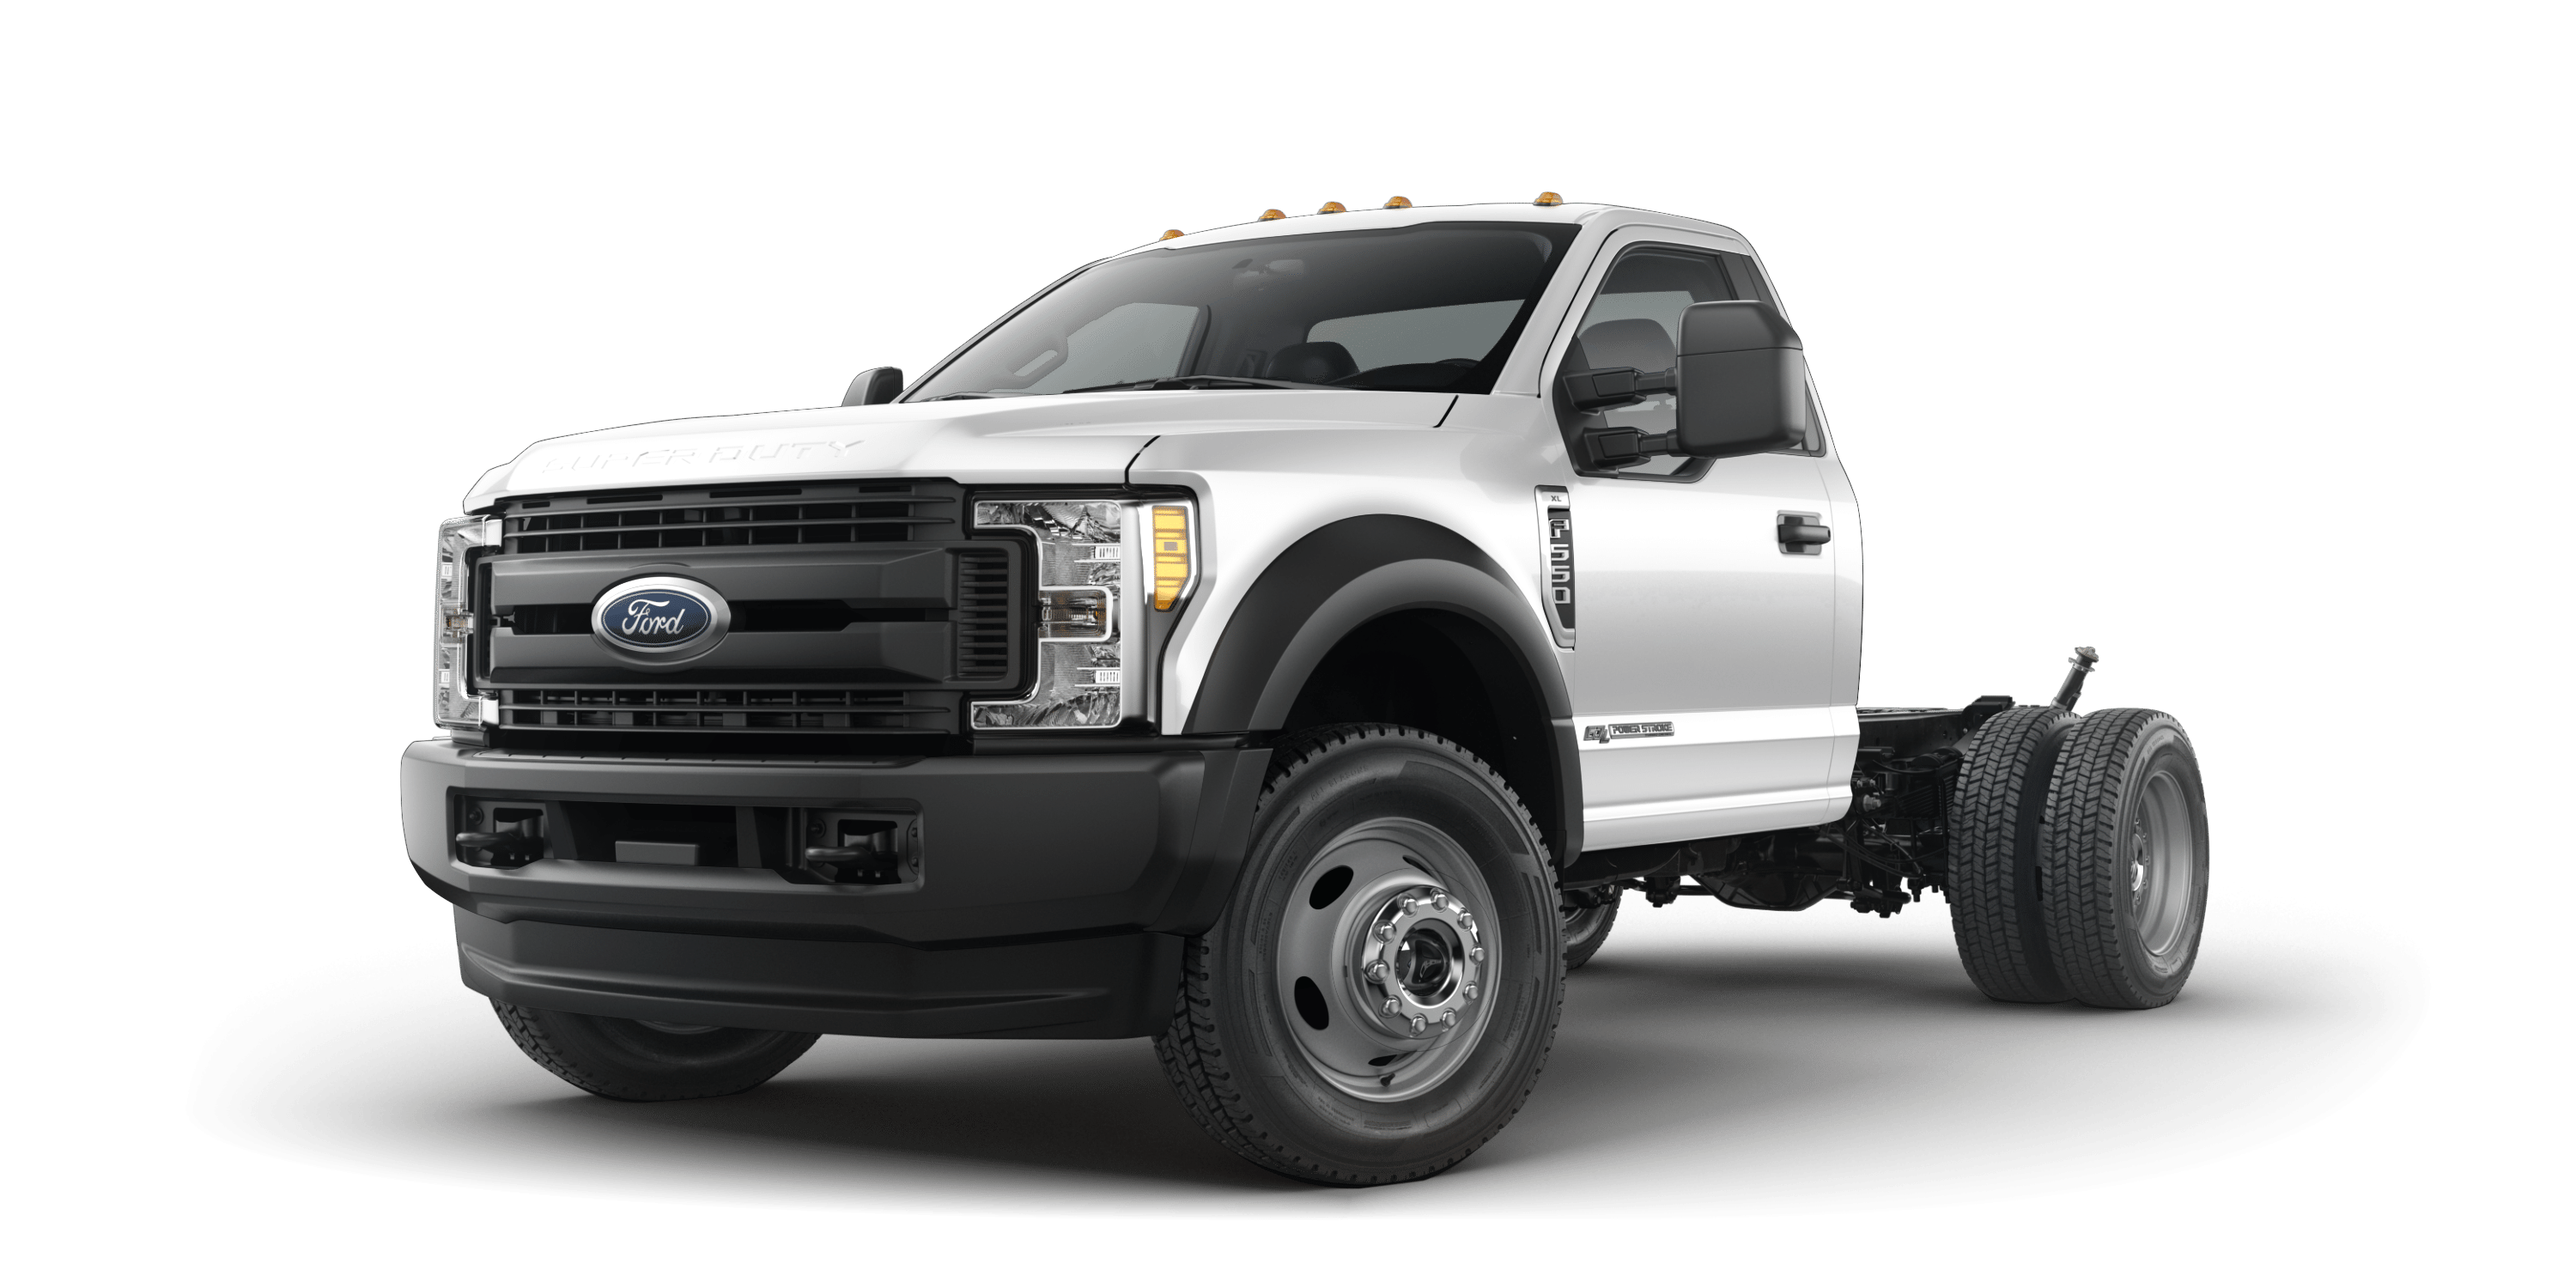 2017 Ford Super Duty F 550 DRW for sale in Terrell